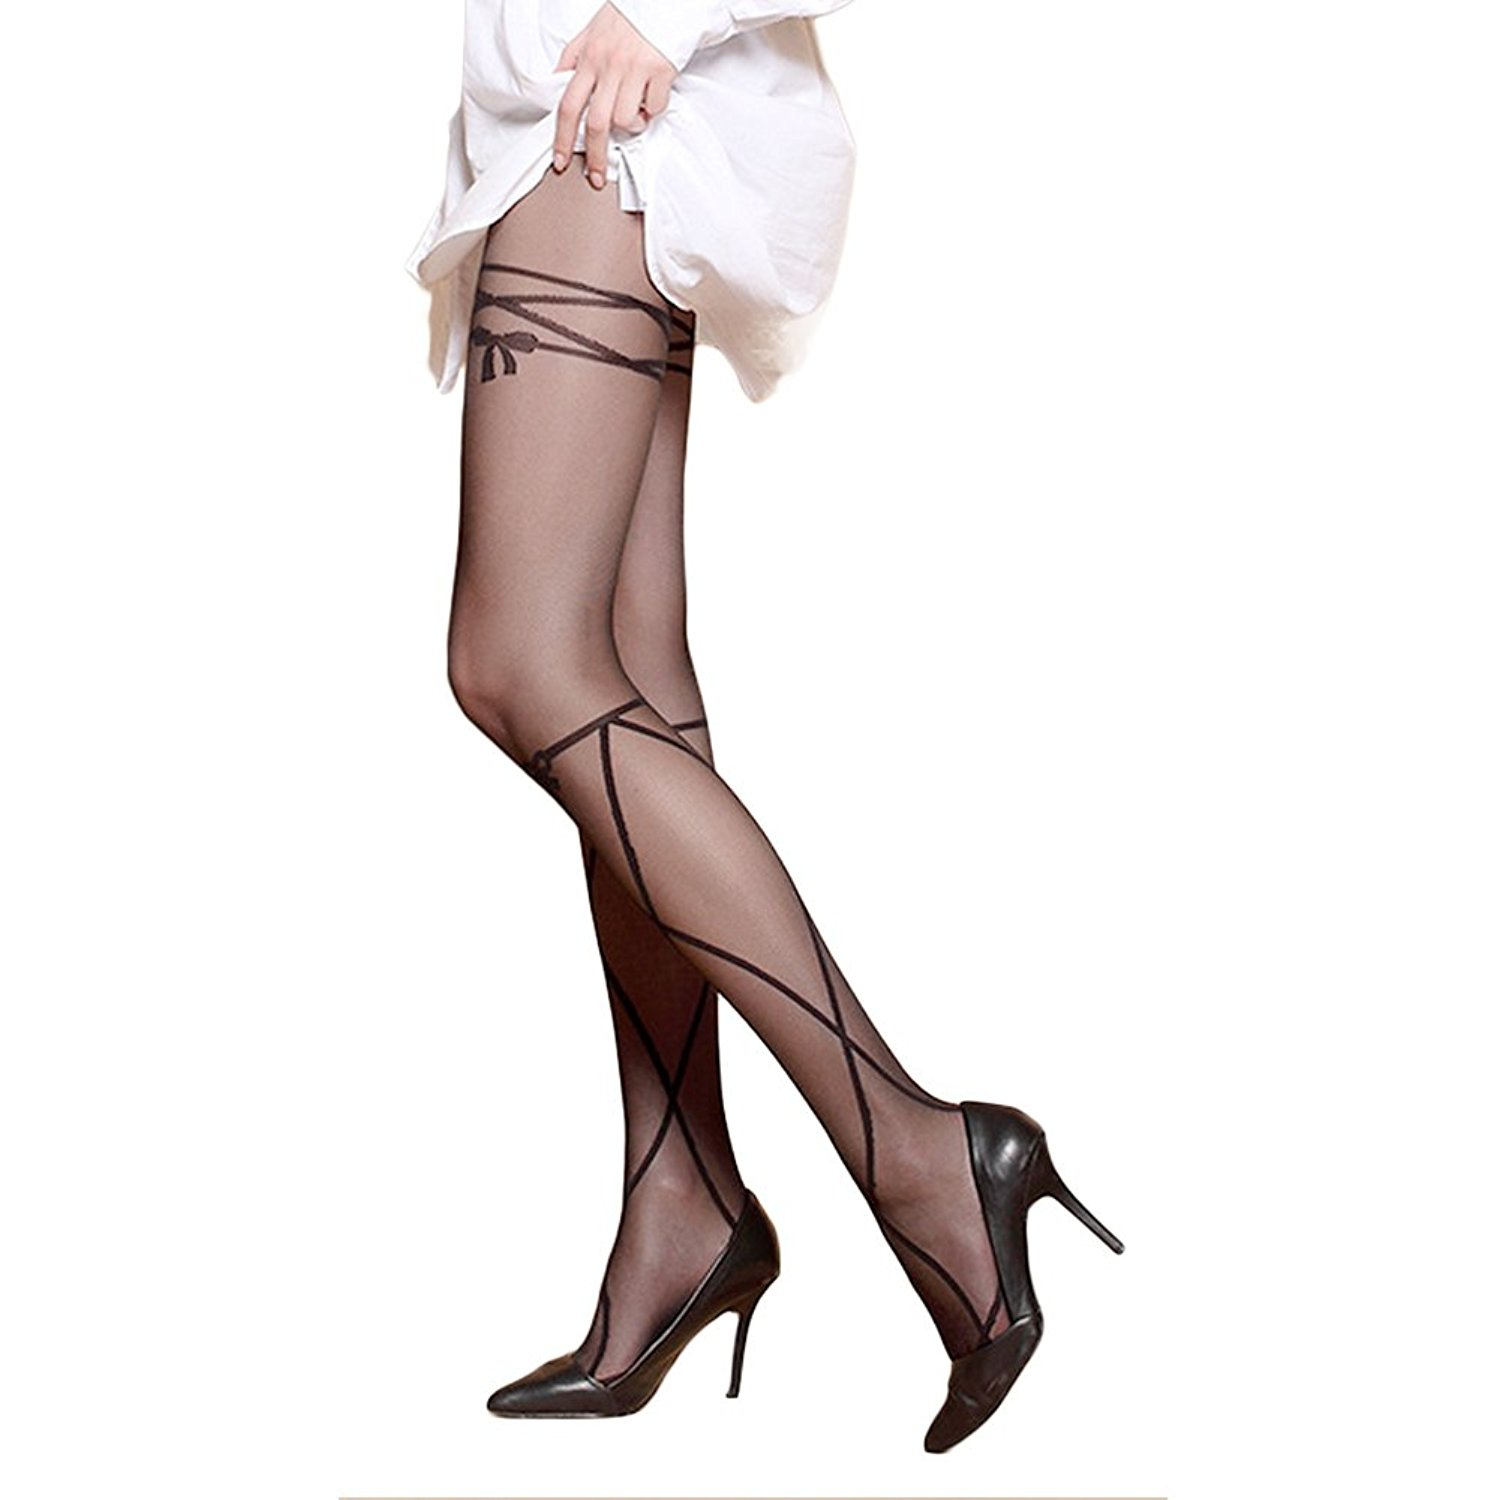 bda15d3e7 Get Quotations · Blostirno Women s Sheer to Waist Floral Patterned Tights  Pantyhose Tattoo Tights